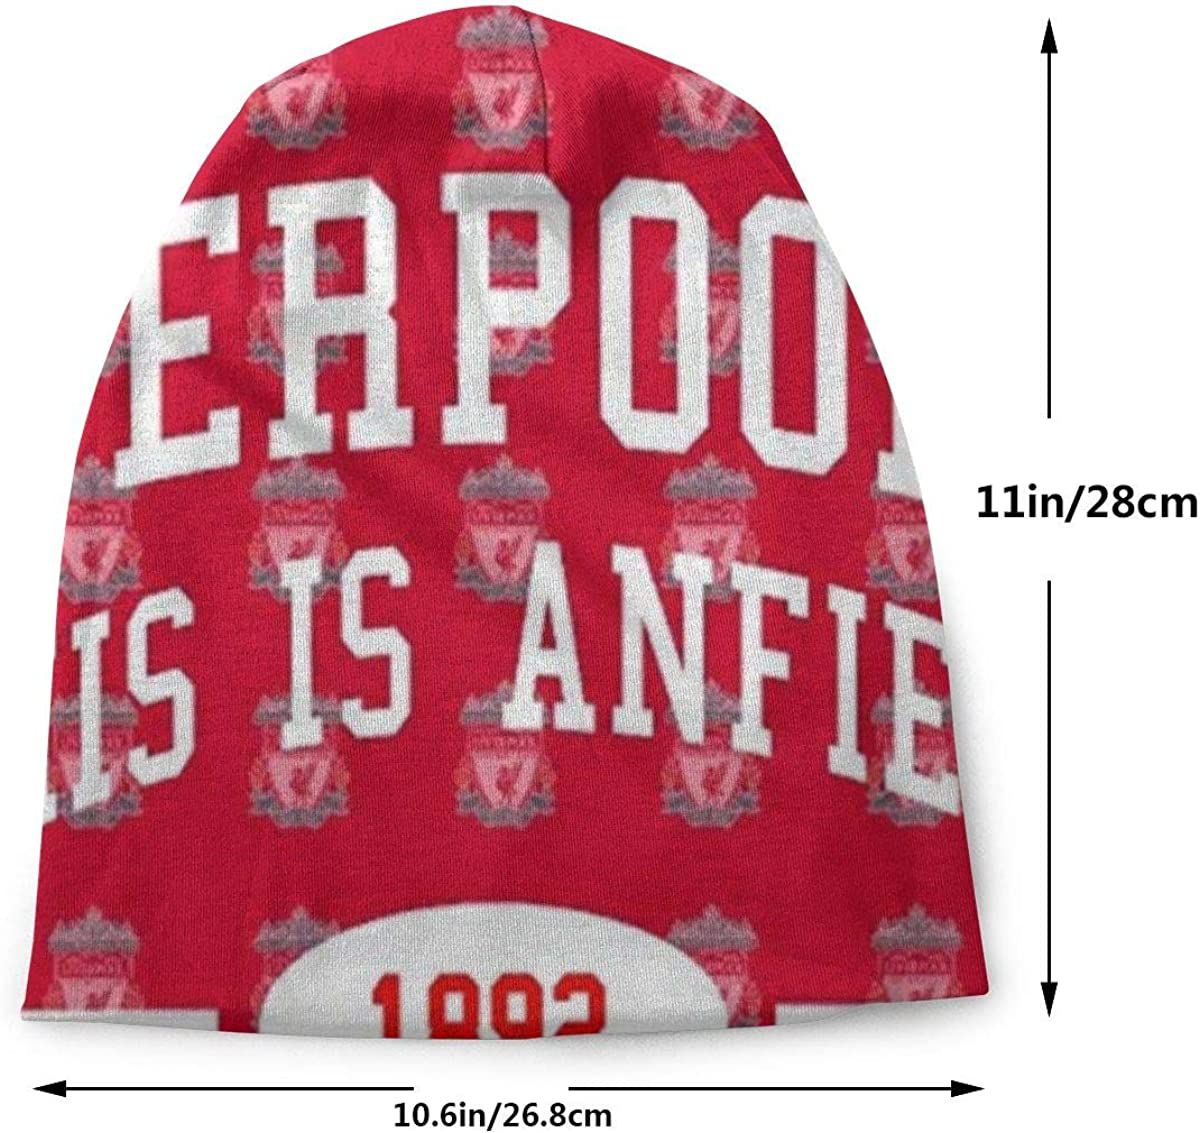 vQ87o0t Liverpool Fc Anfield Knit Beanie Winter Hat Warm Stretchy Soft Beanie Hats for Men and Women ,Year Round Comfort